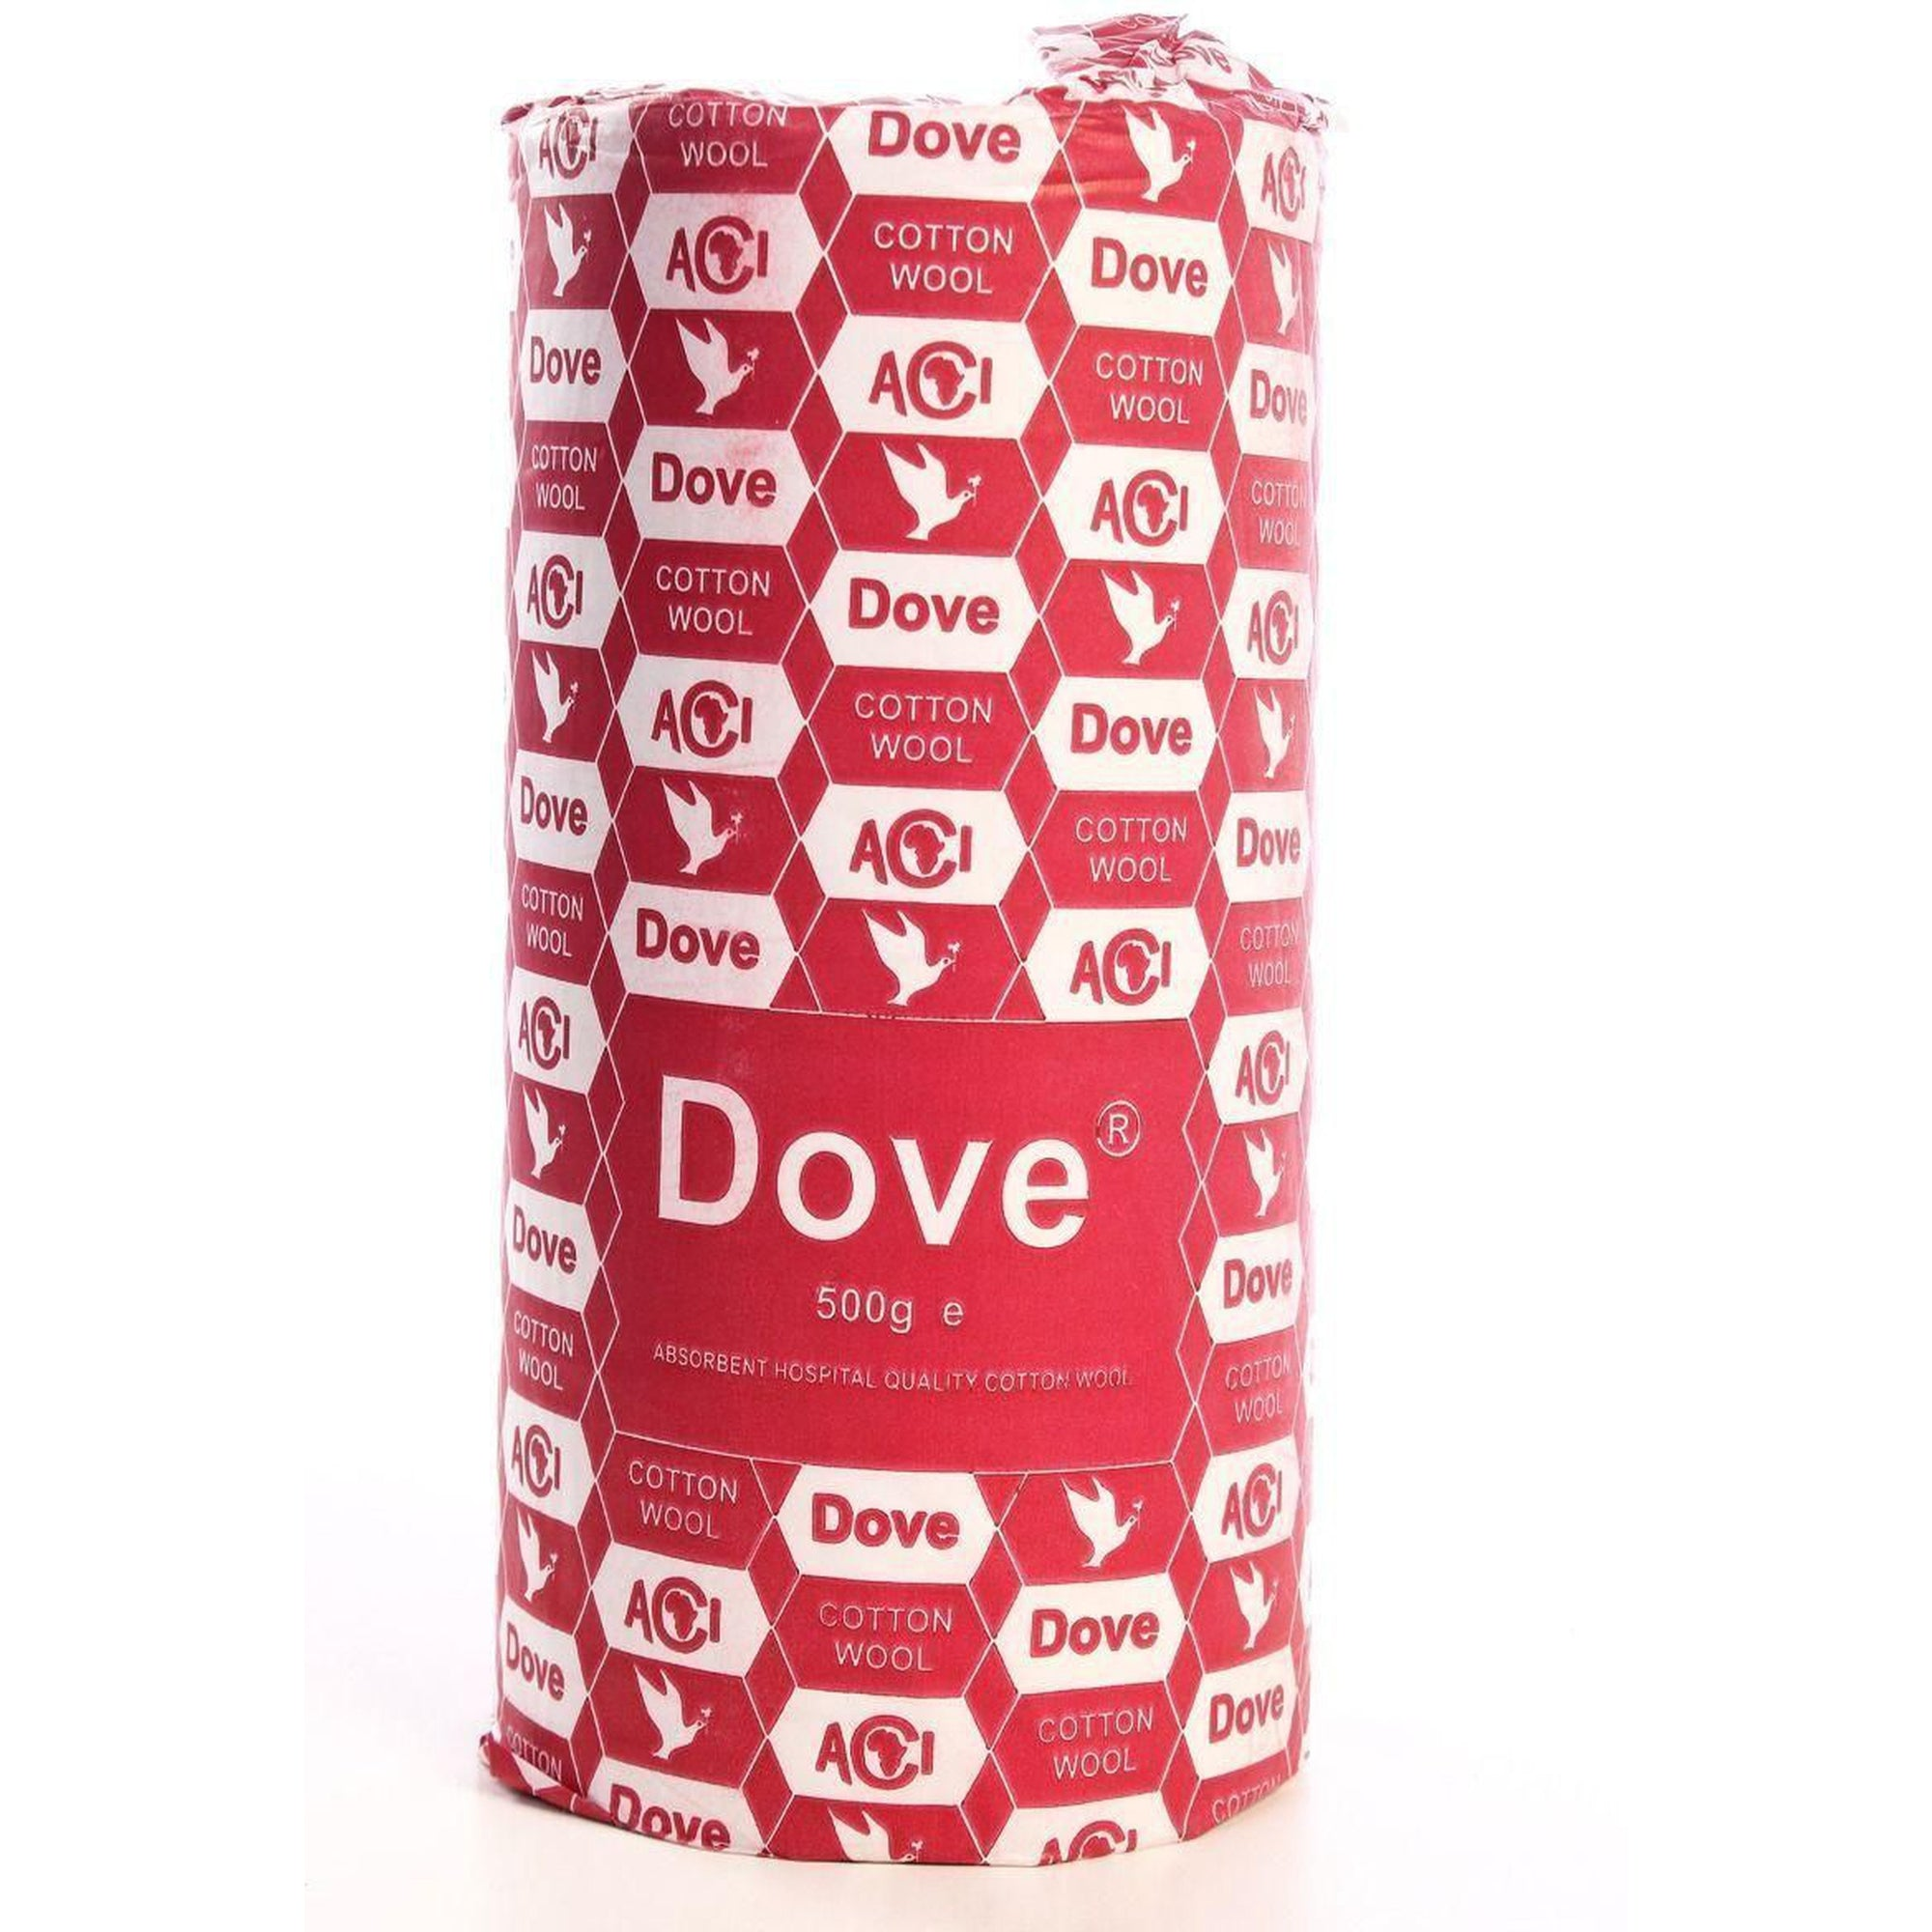 Dove Cotton Wool 500g-Cotton Wool-Mother and Baby Shop Kenya's #1 Online Baby Shop